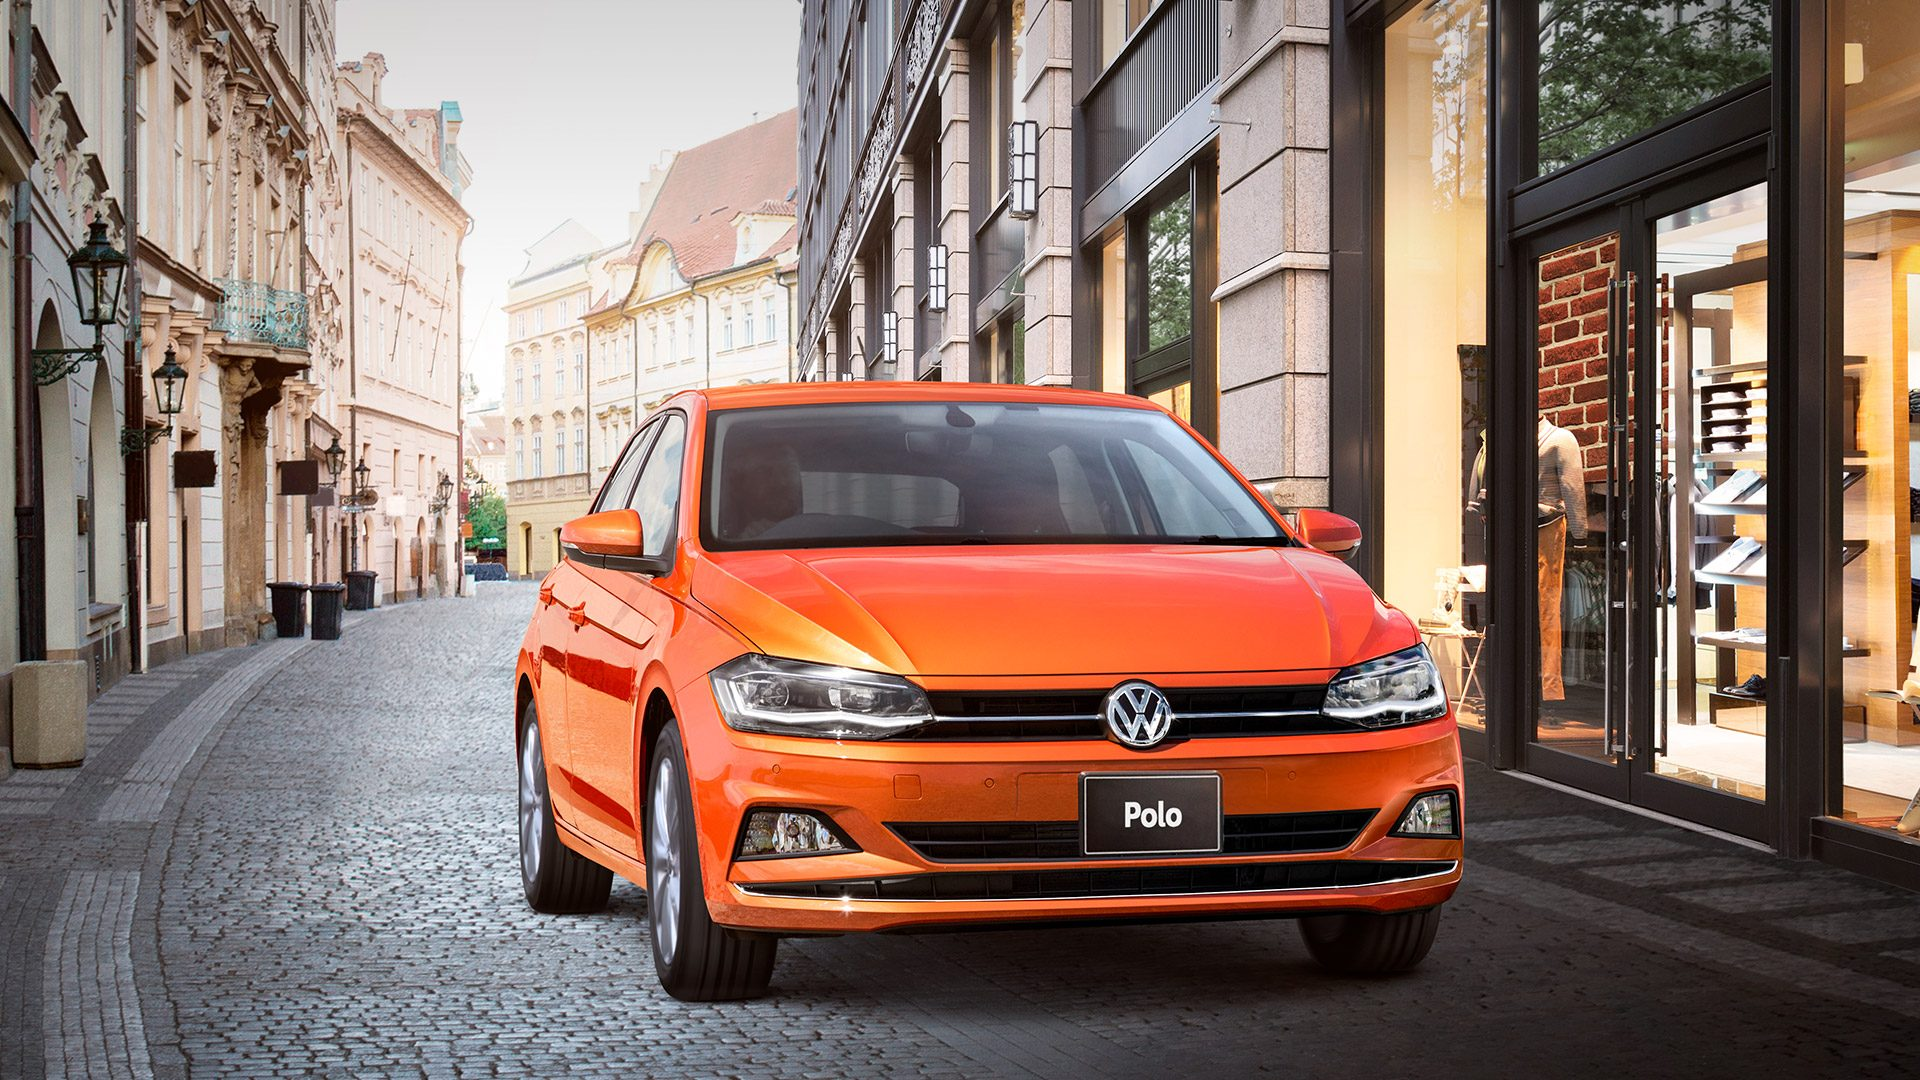 https://www.volkswagen.co.jp/ja/models/polo.html#home